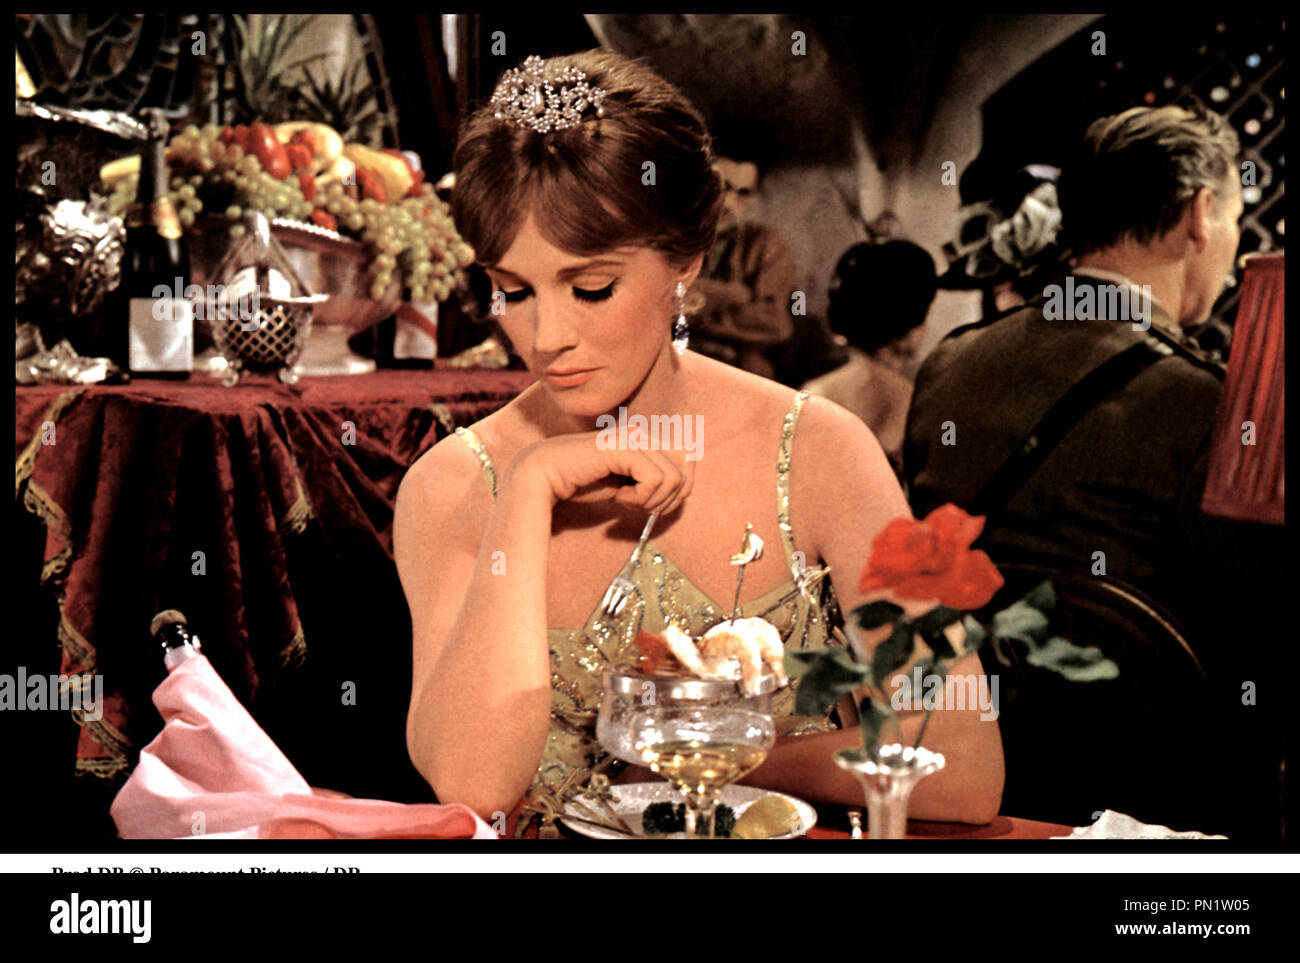 Prod DB © Paramount Pictures / DR DARLING LILI (DARLING LILI) de Blake Edwards 1970 USA avec Julie Andrews restaurant, luxe, repas, table, tenue de soiree - Stock Image